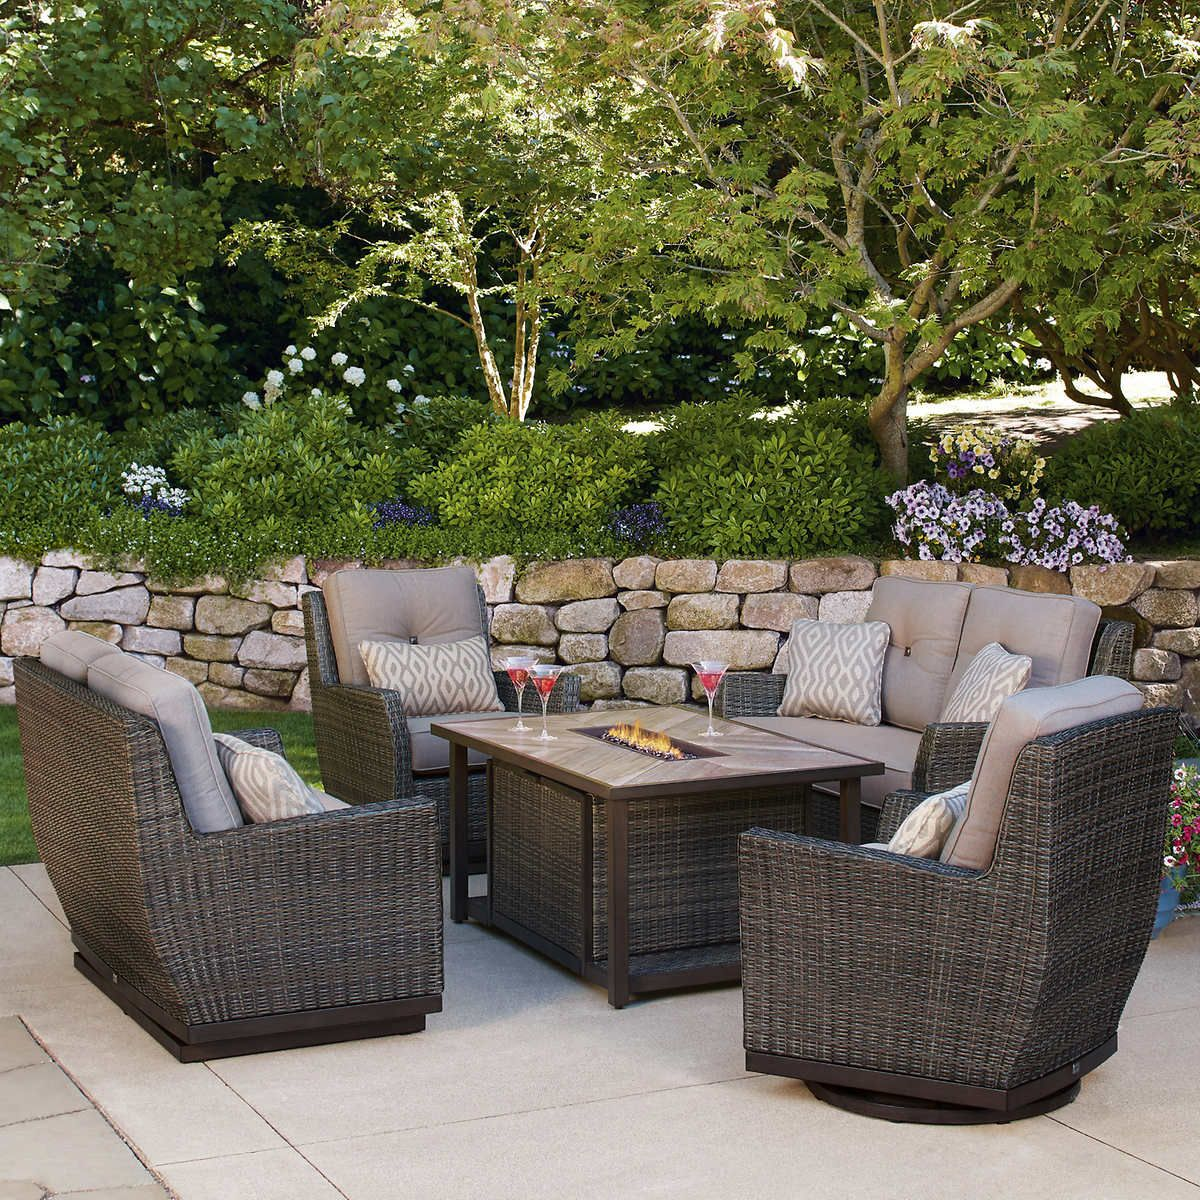 Pin by Falcon Ridge on Outdoor | Fire pit patio set, Patio ... on Costco Outdoor Fireplace  id=14789